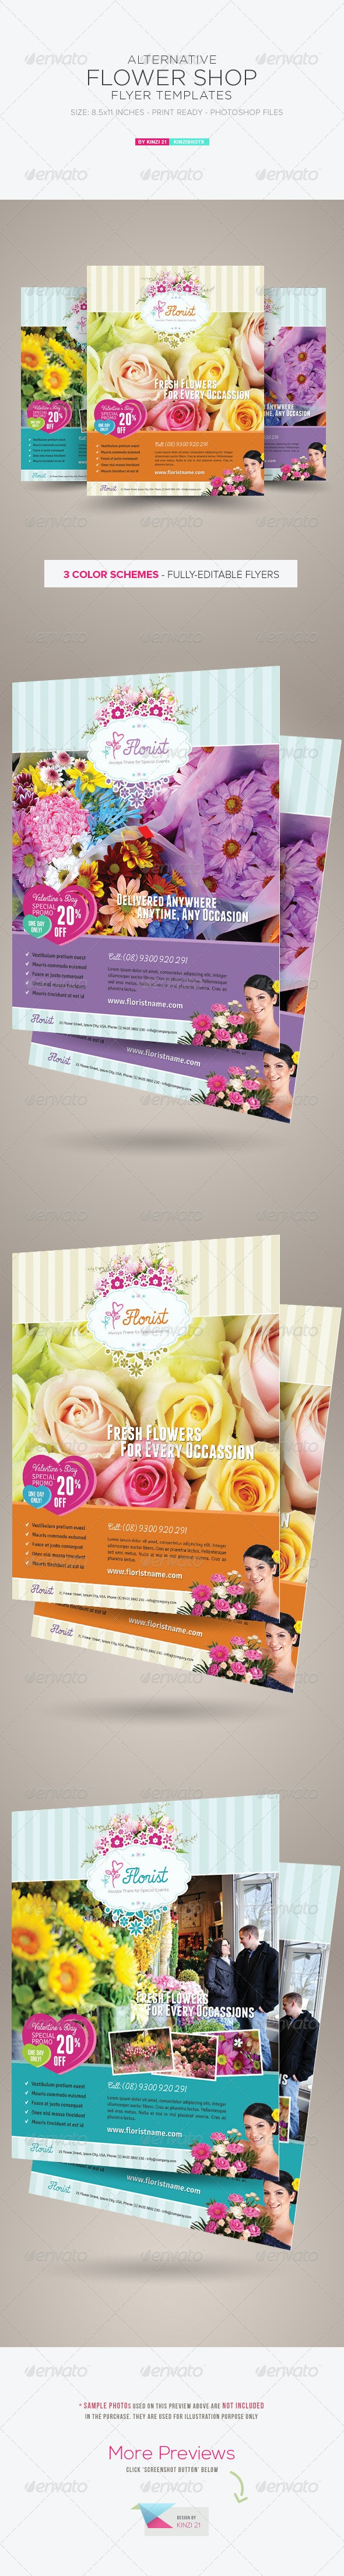 Alternative Flower Shop Flyer Templates - Corporate Flyers